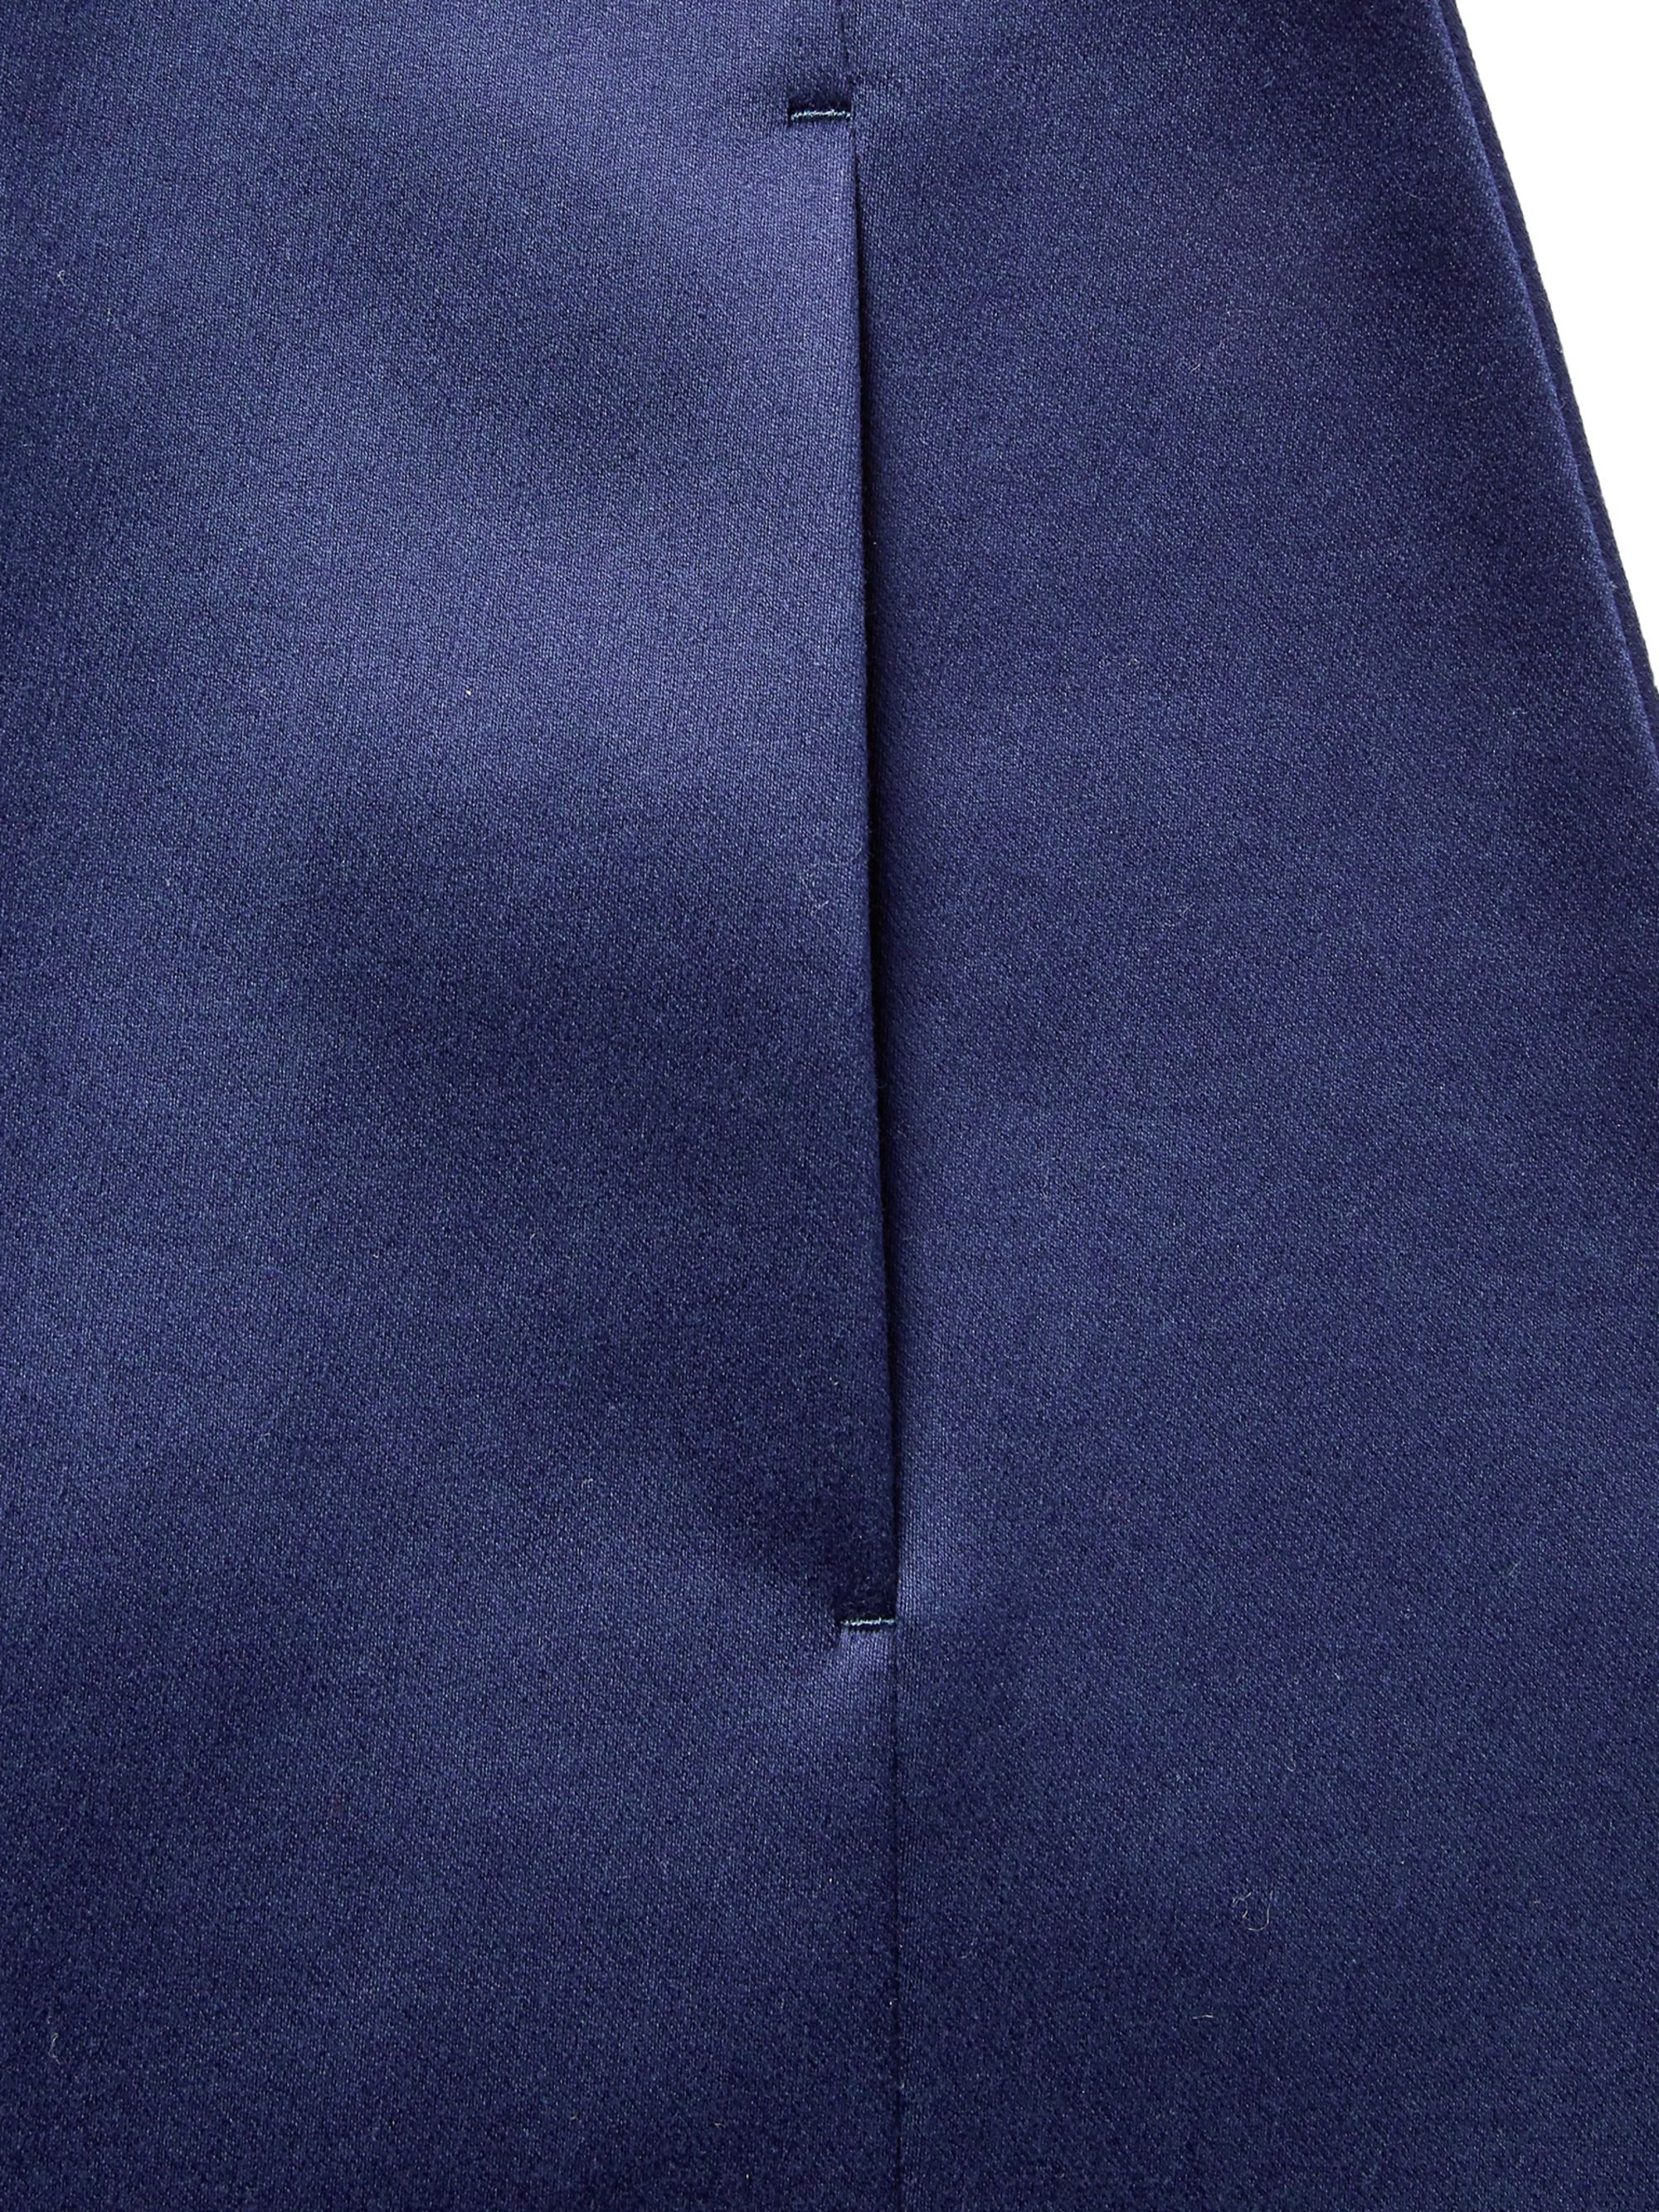 Maison Margiela Navy Collarless Cotton-Sateen Blazer